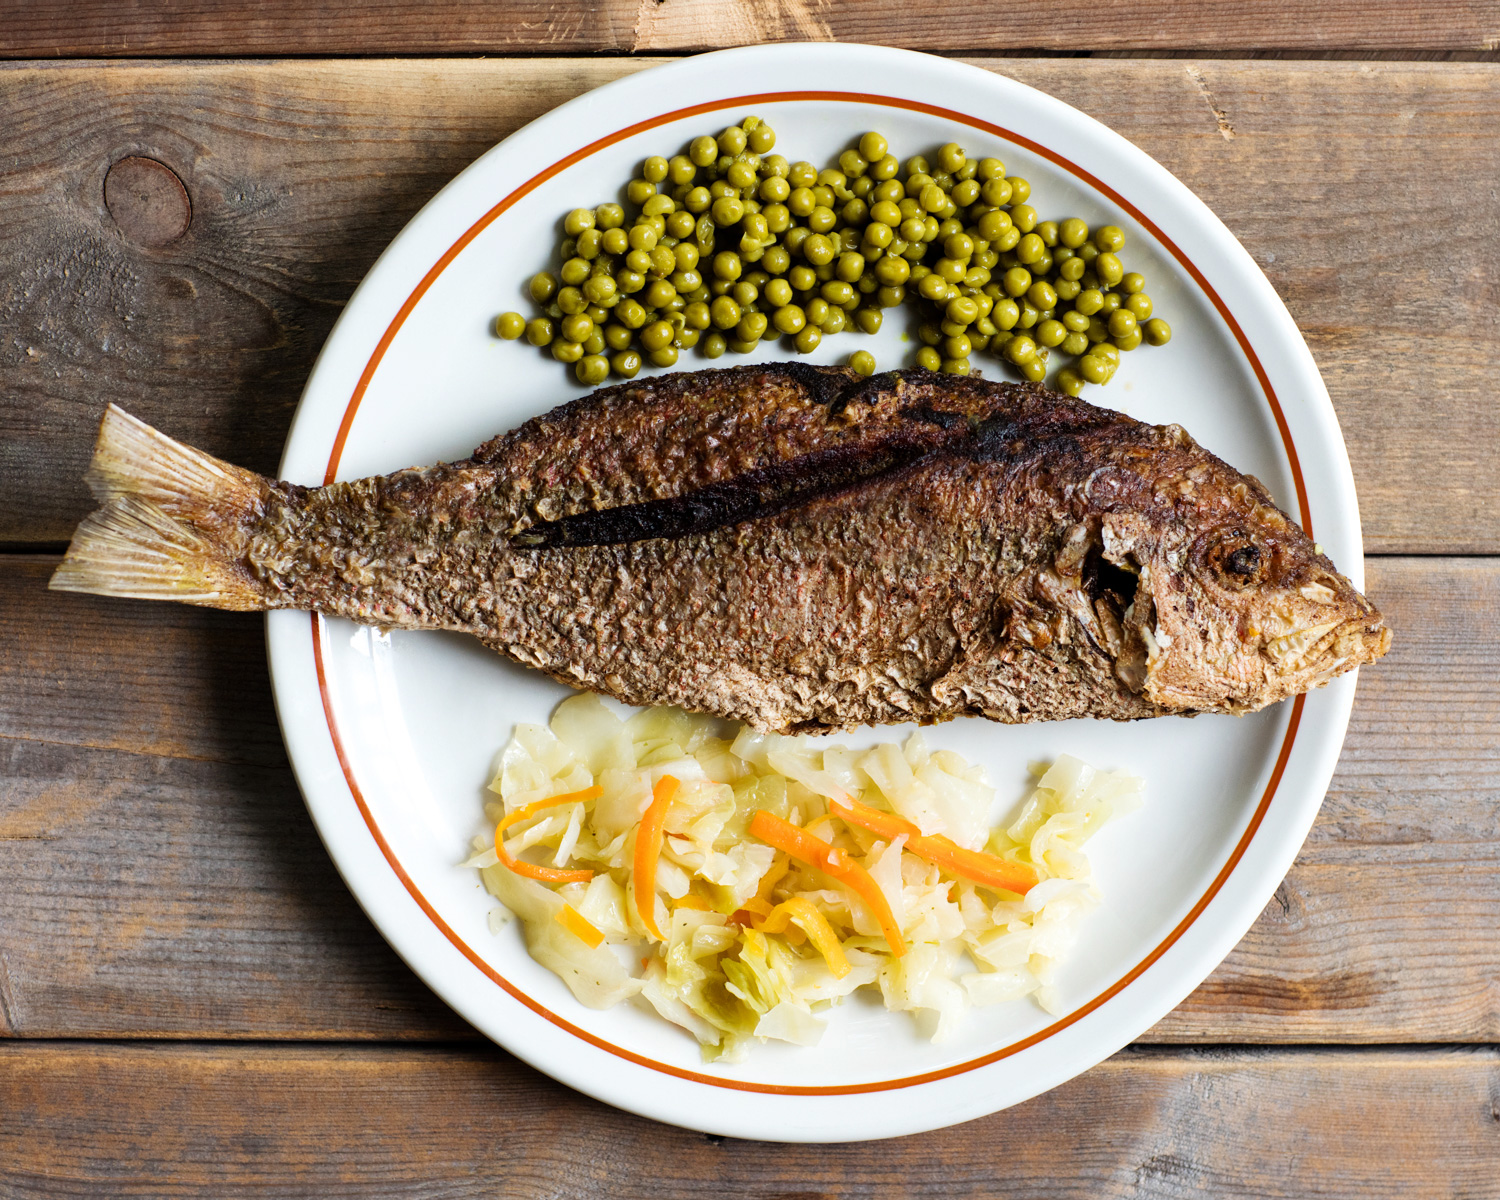 Whole fried fish with peas on plate